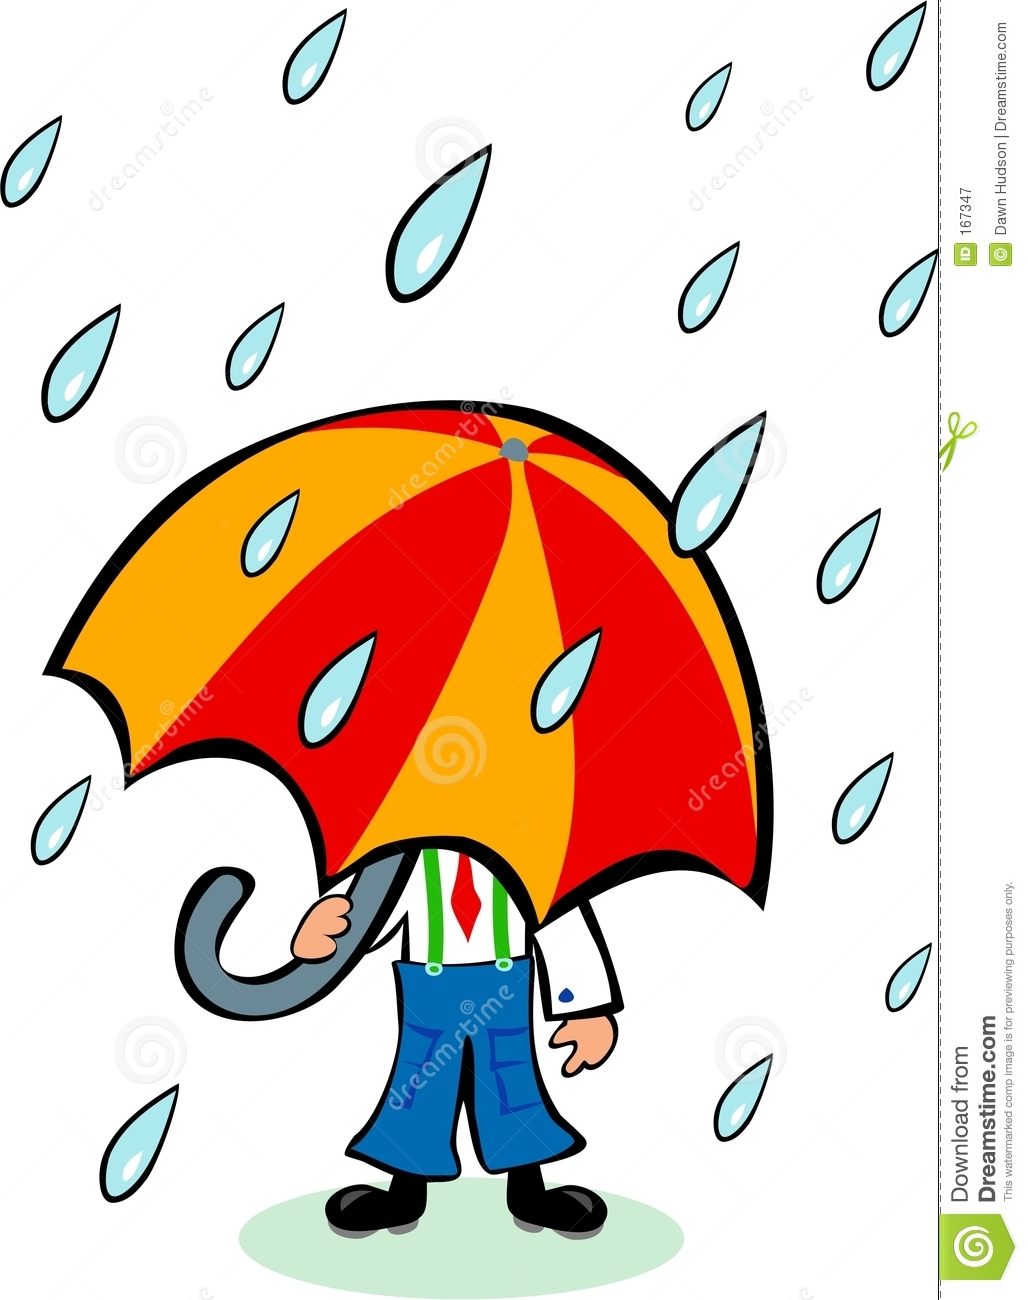 Collection of free download. Wet clipart wet weather